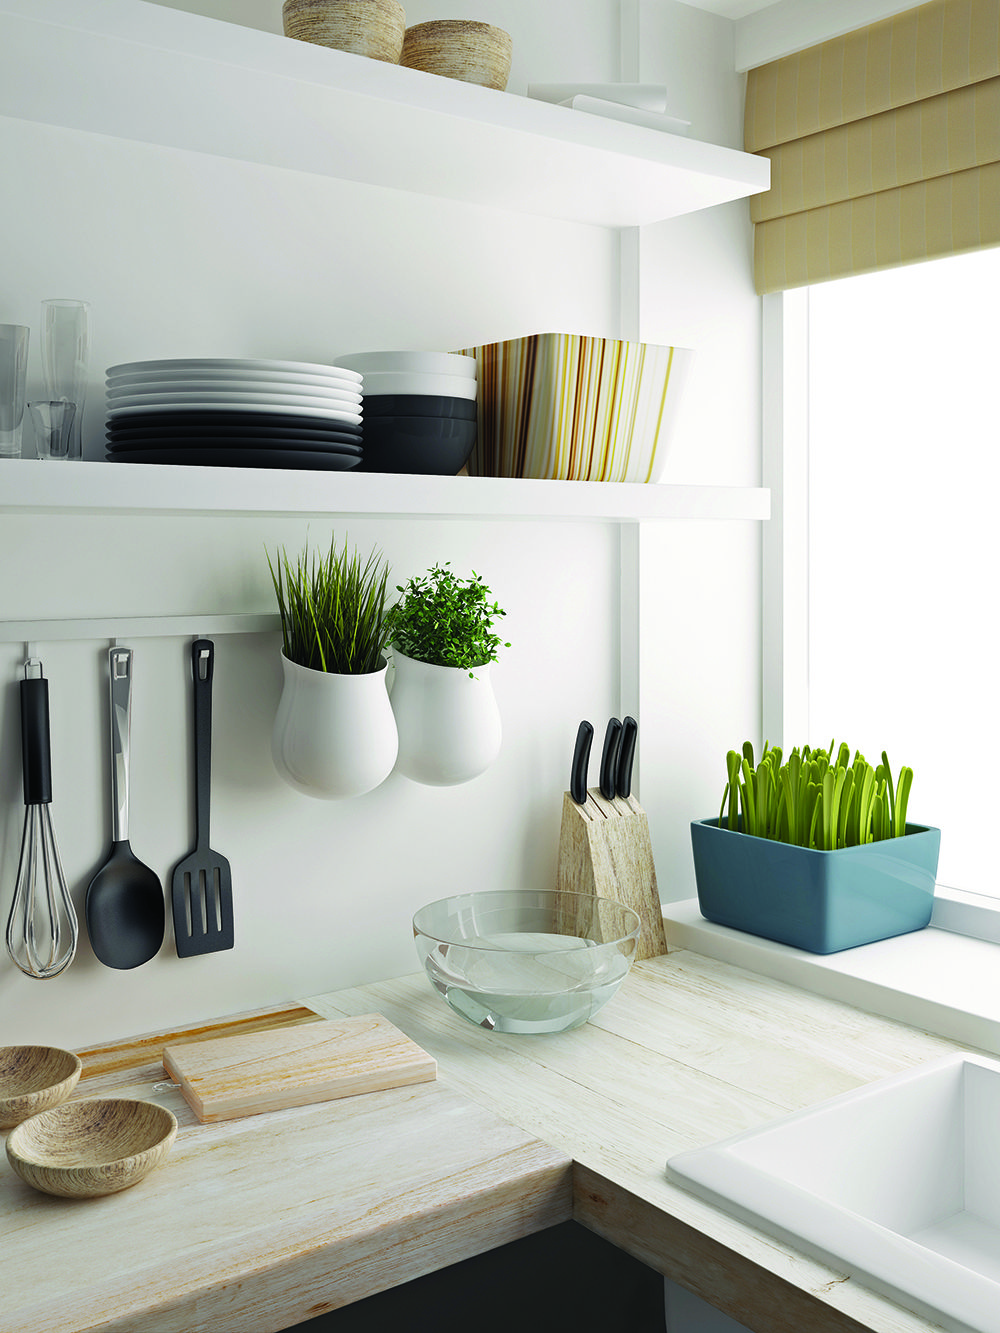 The Floating Shelf Bracket easily mounts to the wall for